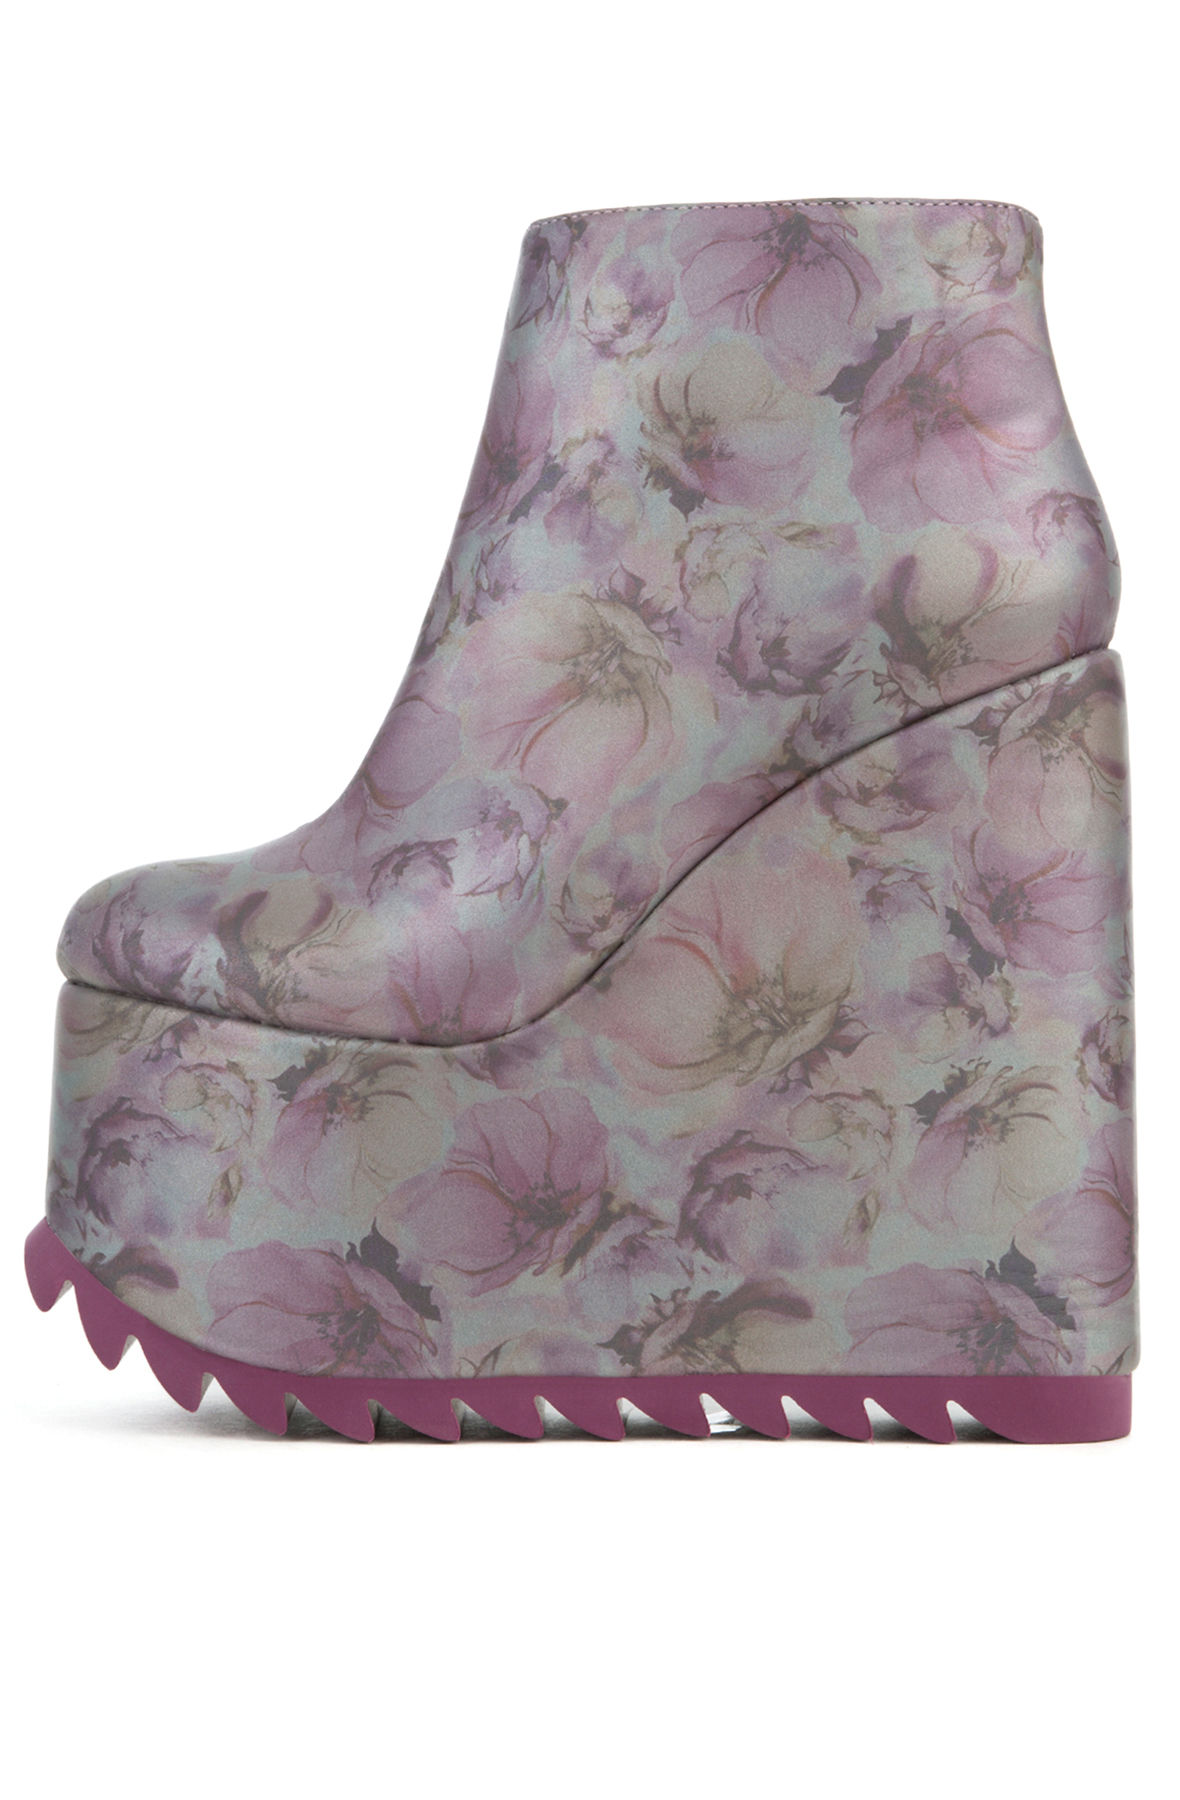 The Dimension Boot in Lavender Floral